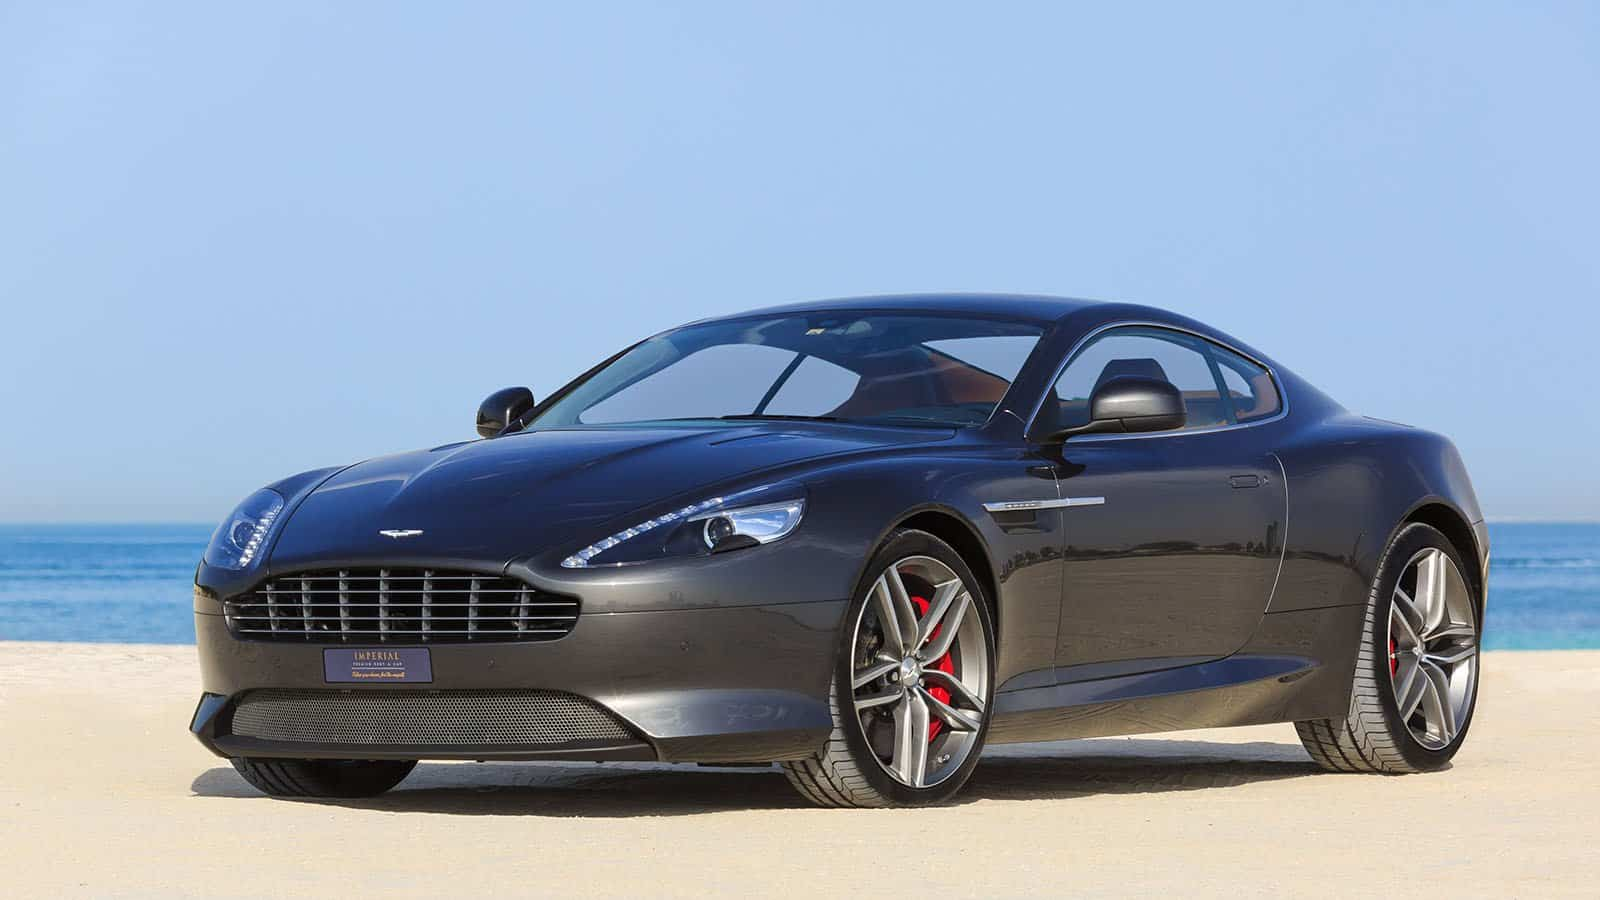 aston martin db9 rent dubai imperial premium rent a car. Black Bedroom Furniture Sets. Home Design Ideas